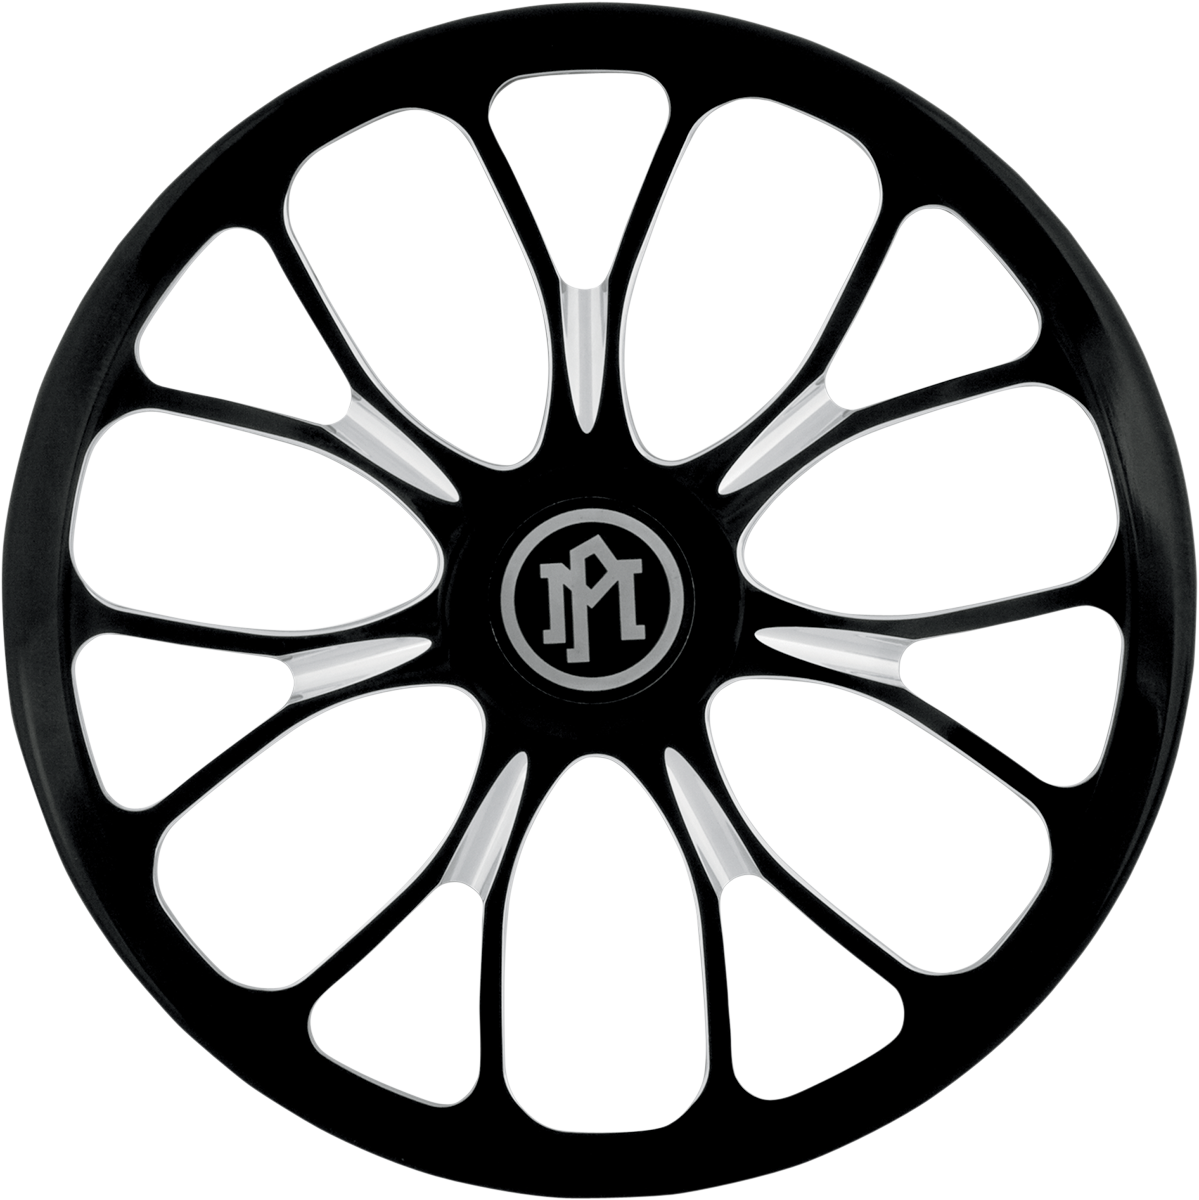 Performance Machine Black Silver Heathen Motorcycle Air Cleaner Cover Insert